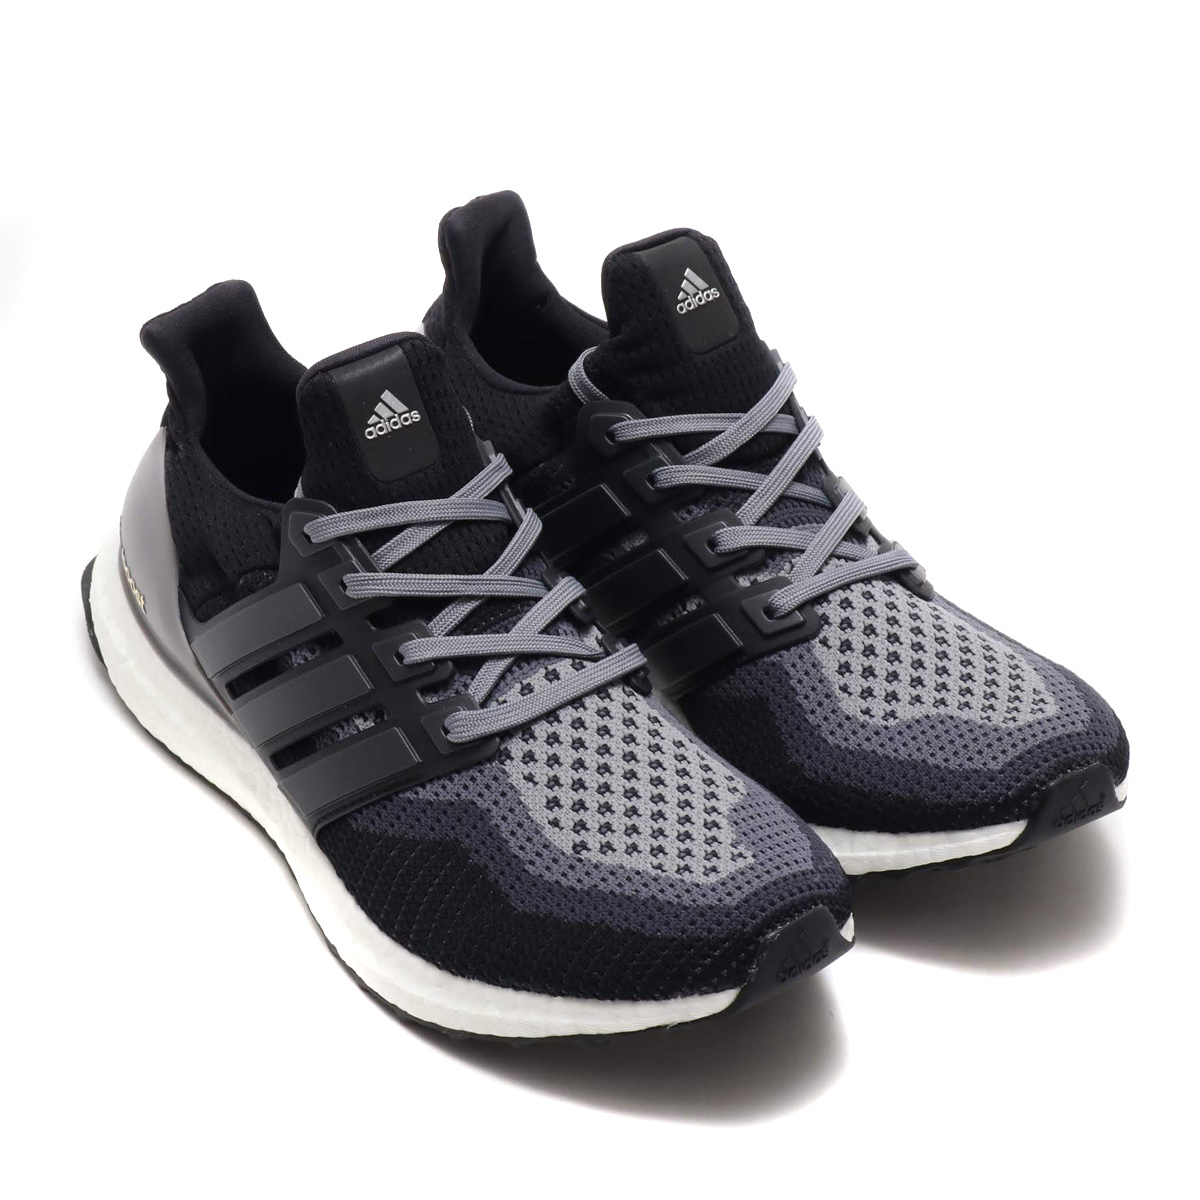 866f1f1a0b9 The ultimate BOOST form deployment model who changes the concept of the  running. I realize unprecedented cushion characteristics and repulsion